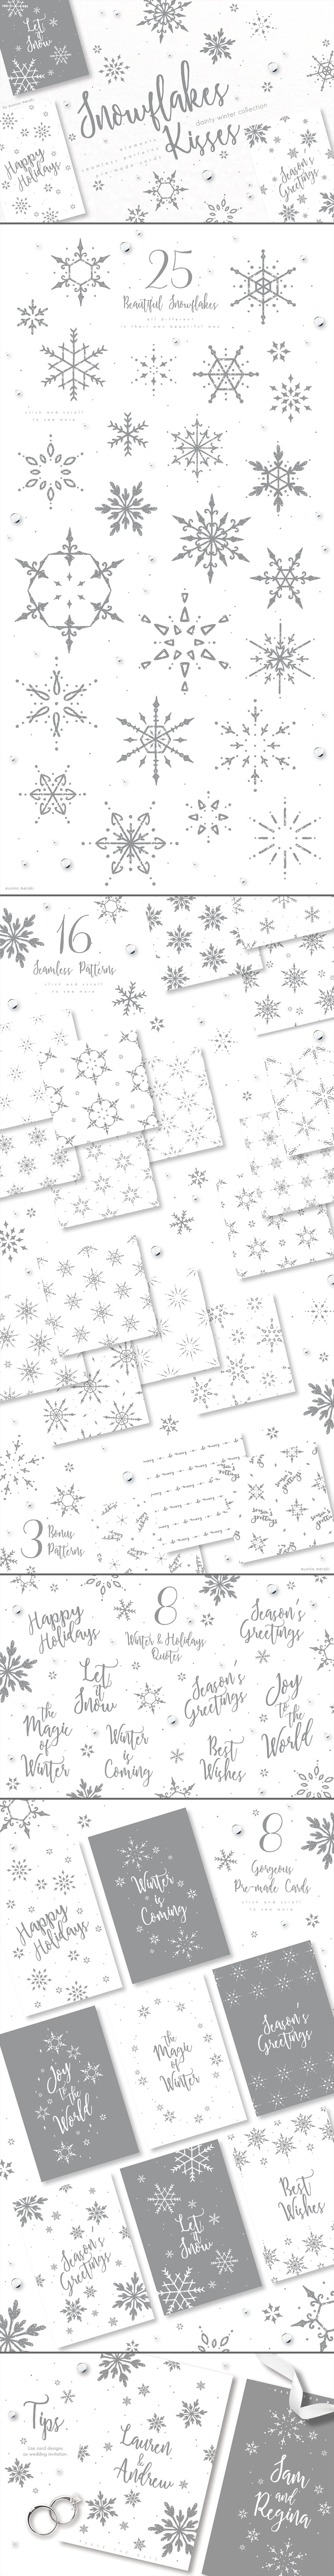 Snowflakes PNG: Snowflakes Kisses - 60 items for $4 - Full Image